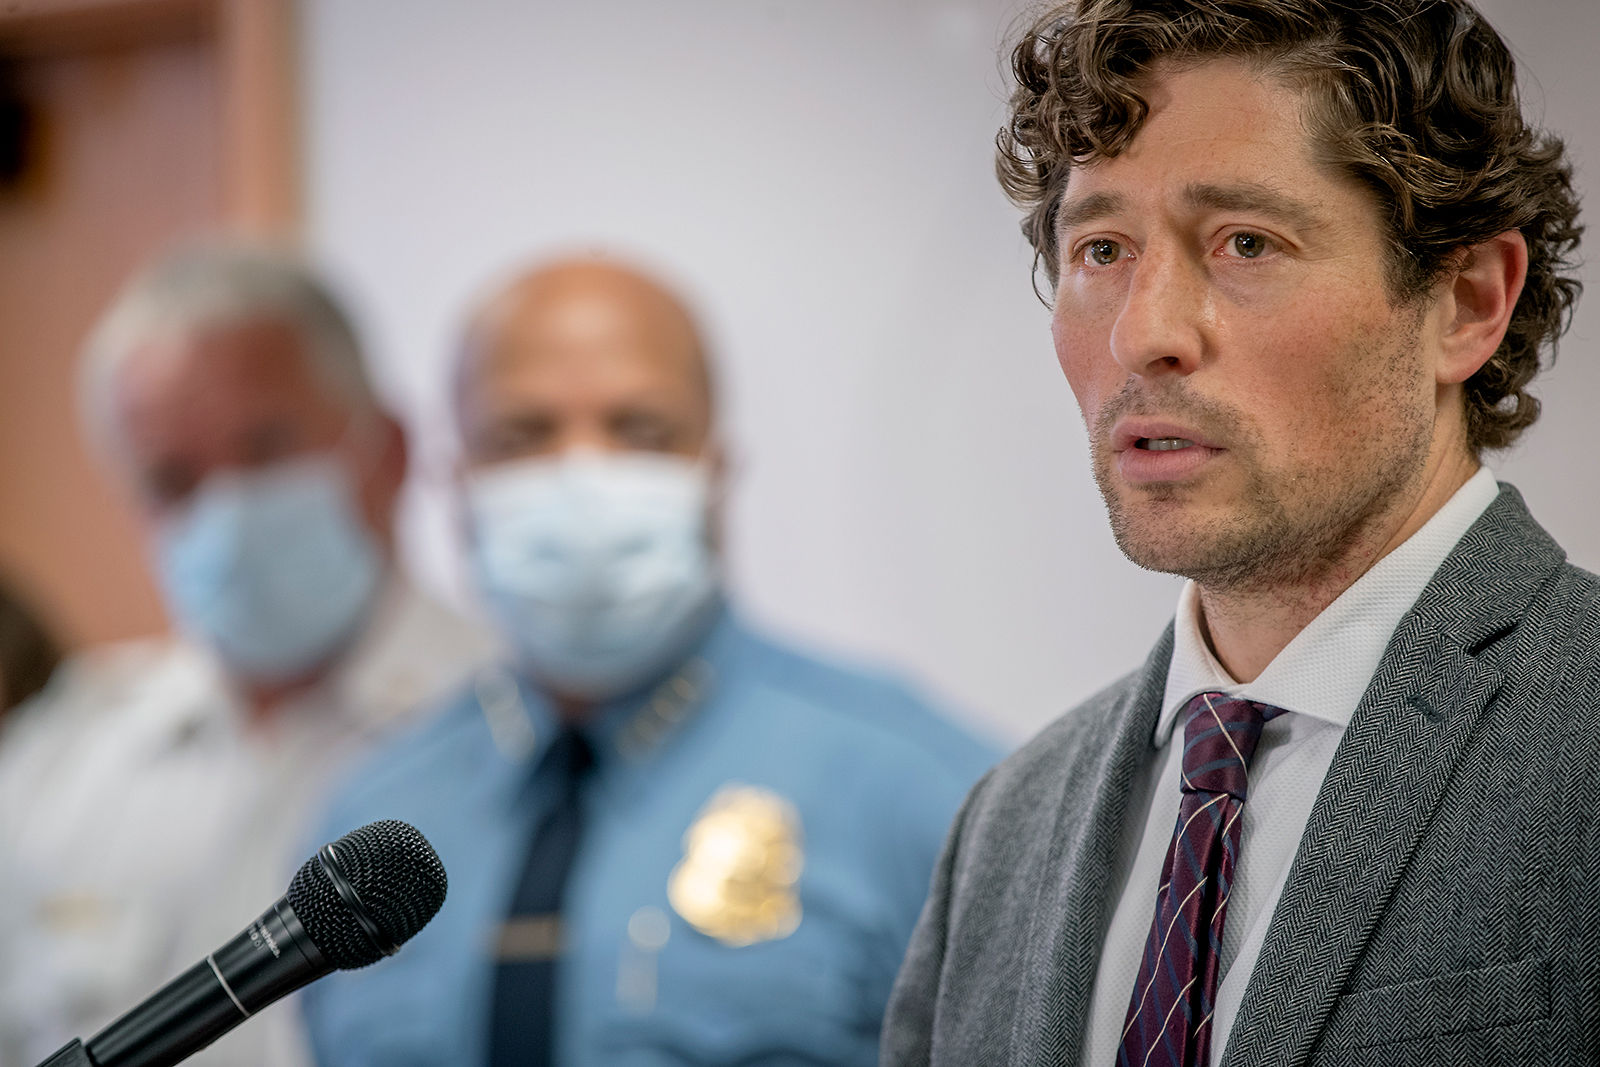 Minneapolis Mayor Jacob Frey speaks during a news conference on May 28, in Minneapolis, Minnesota.